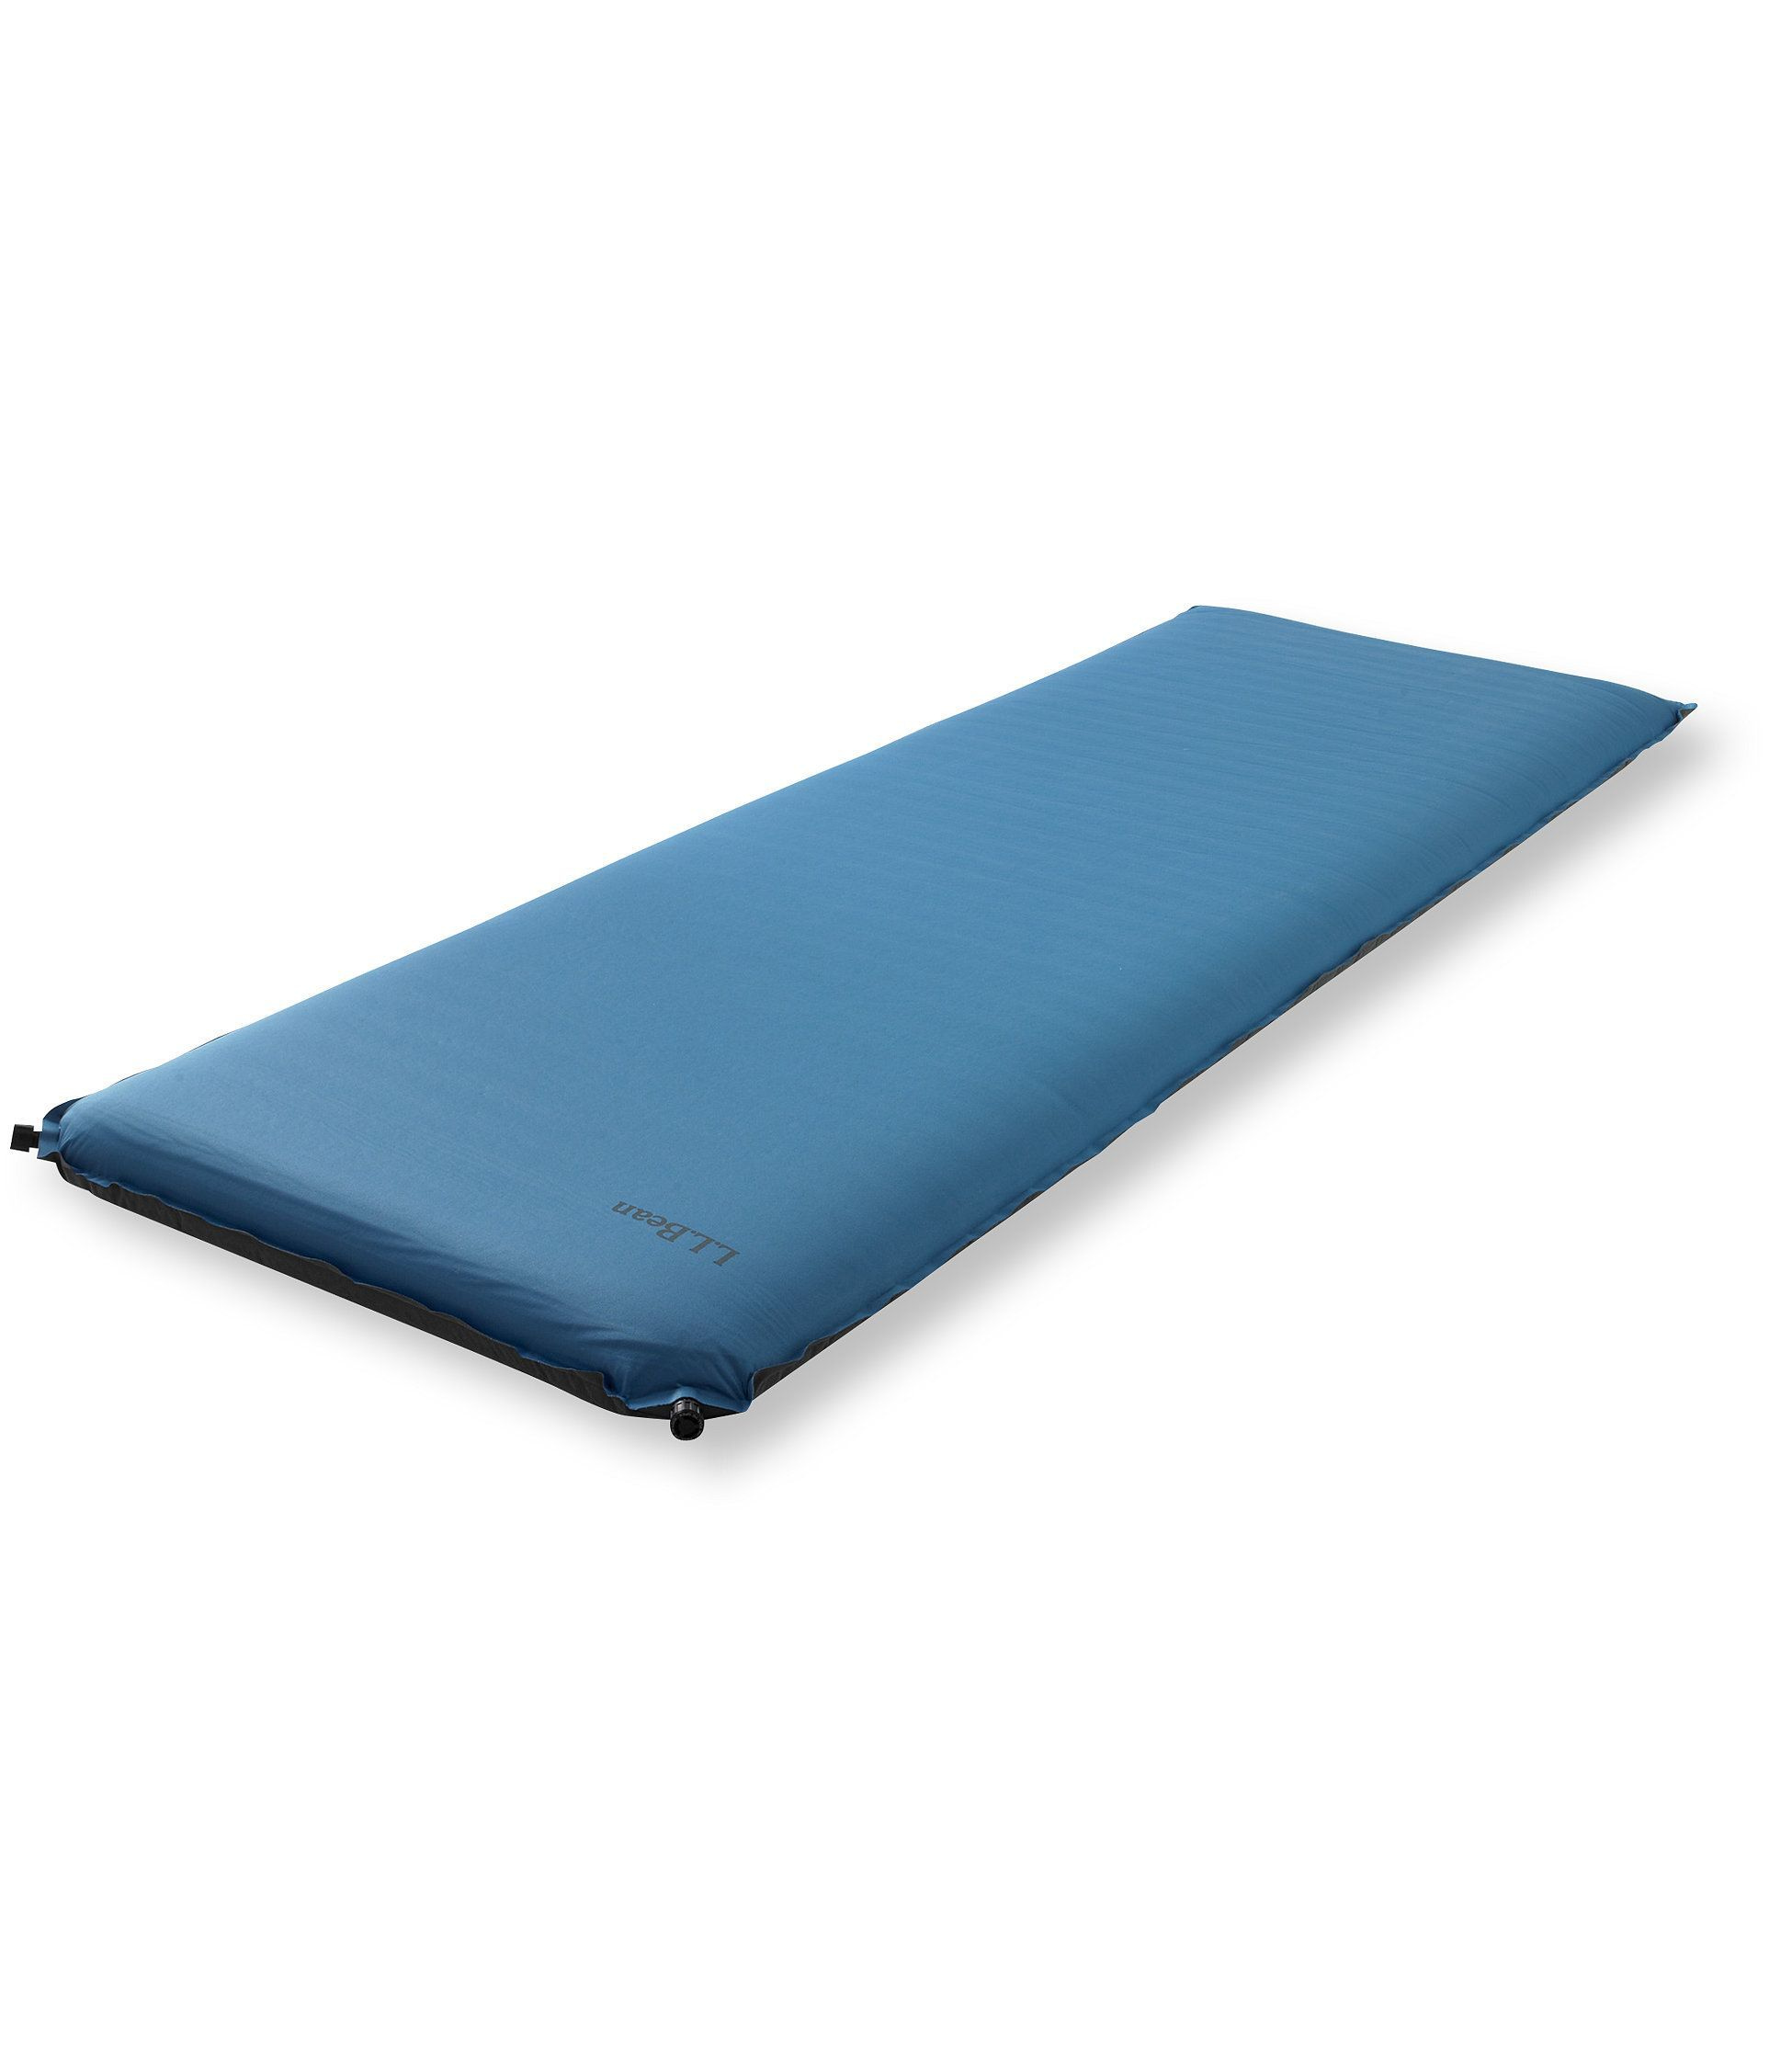 camp futon  the most luxurious sleeping pad we offer  it provides outstanding cushioning and camp futon  the most luxurious sleeping pad we offer  it provides      rh   pinterest